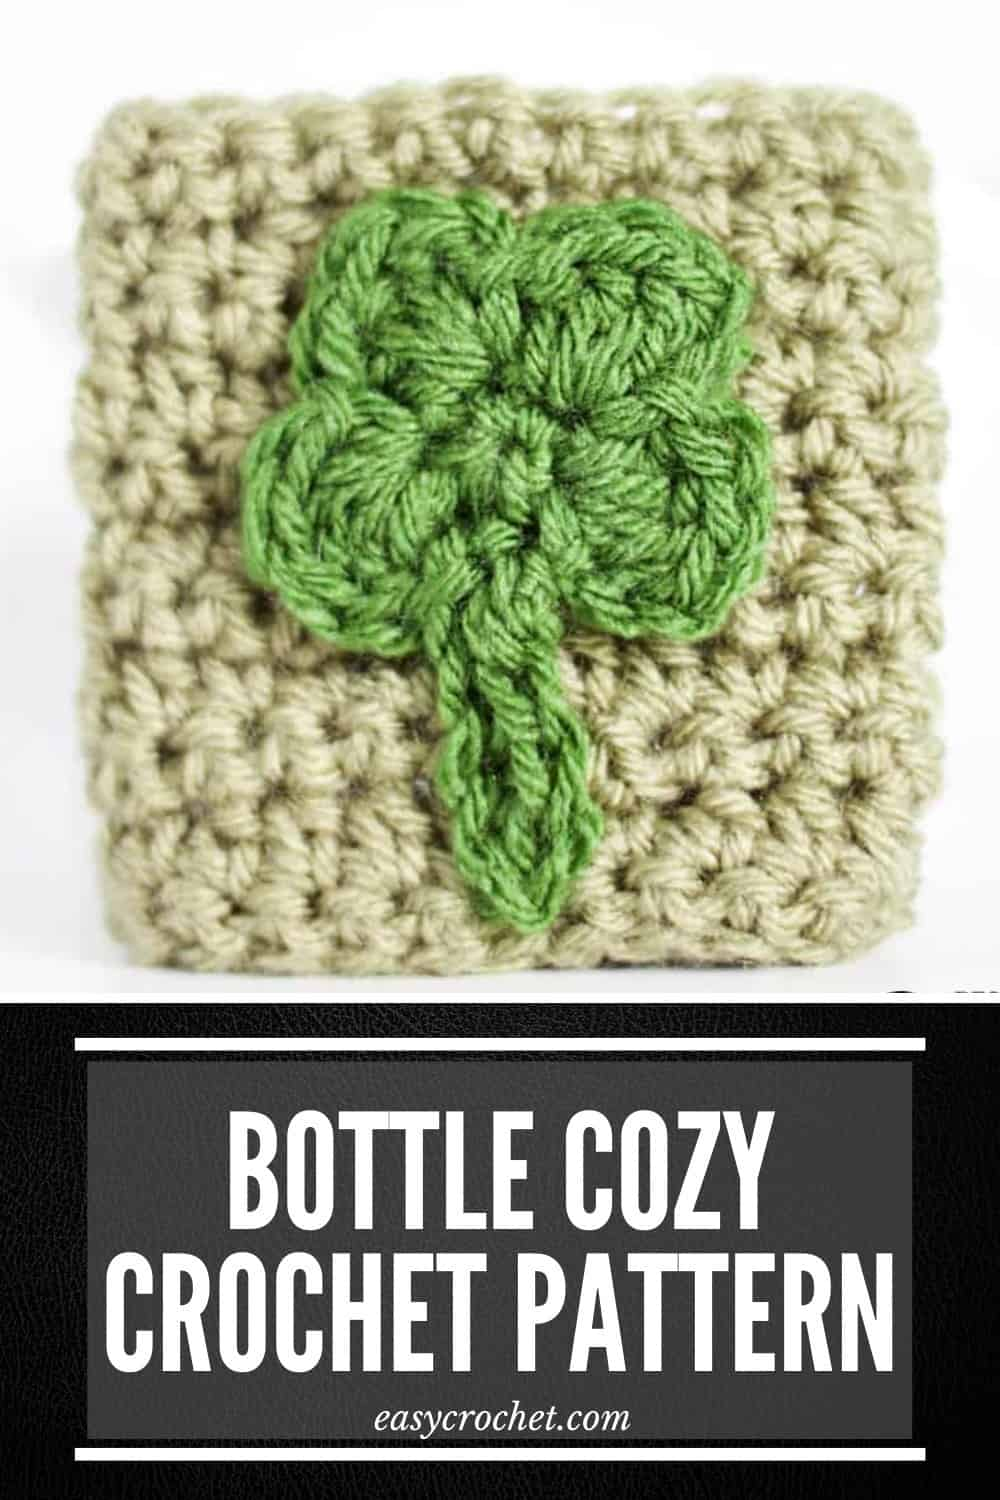 Crochet Shamrock Cozy Pattern for St. Patrick's Day via @easycrochetcom